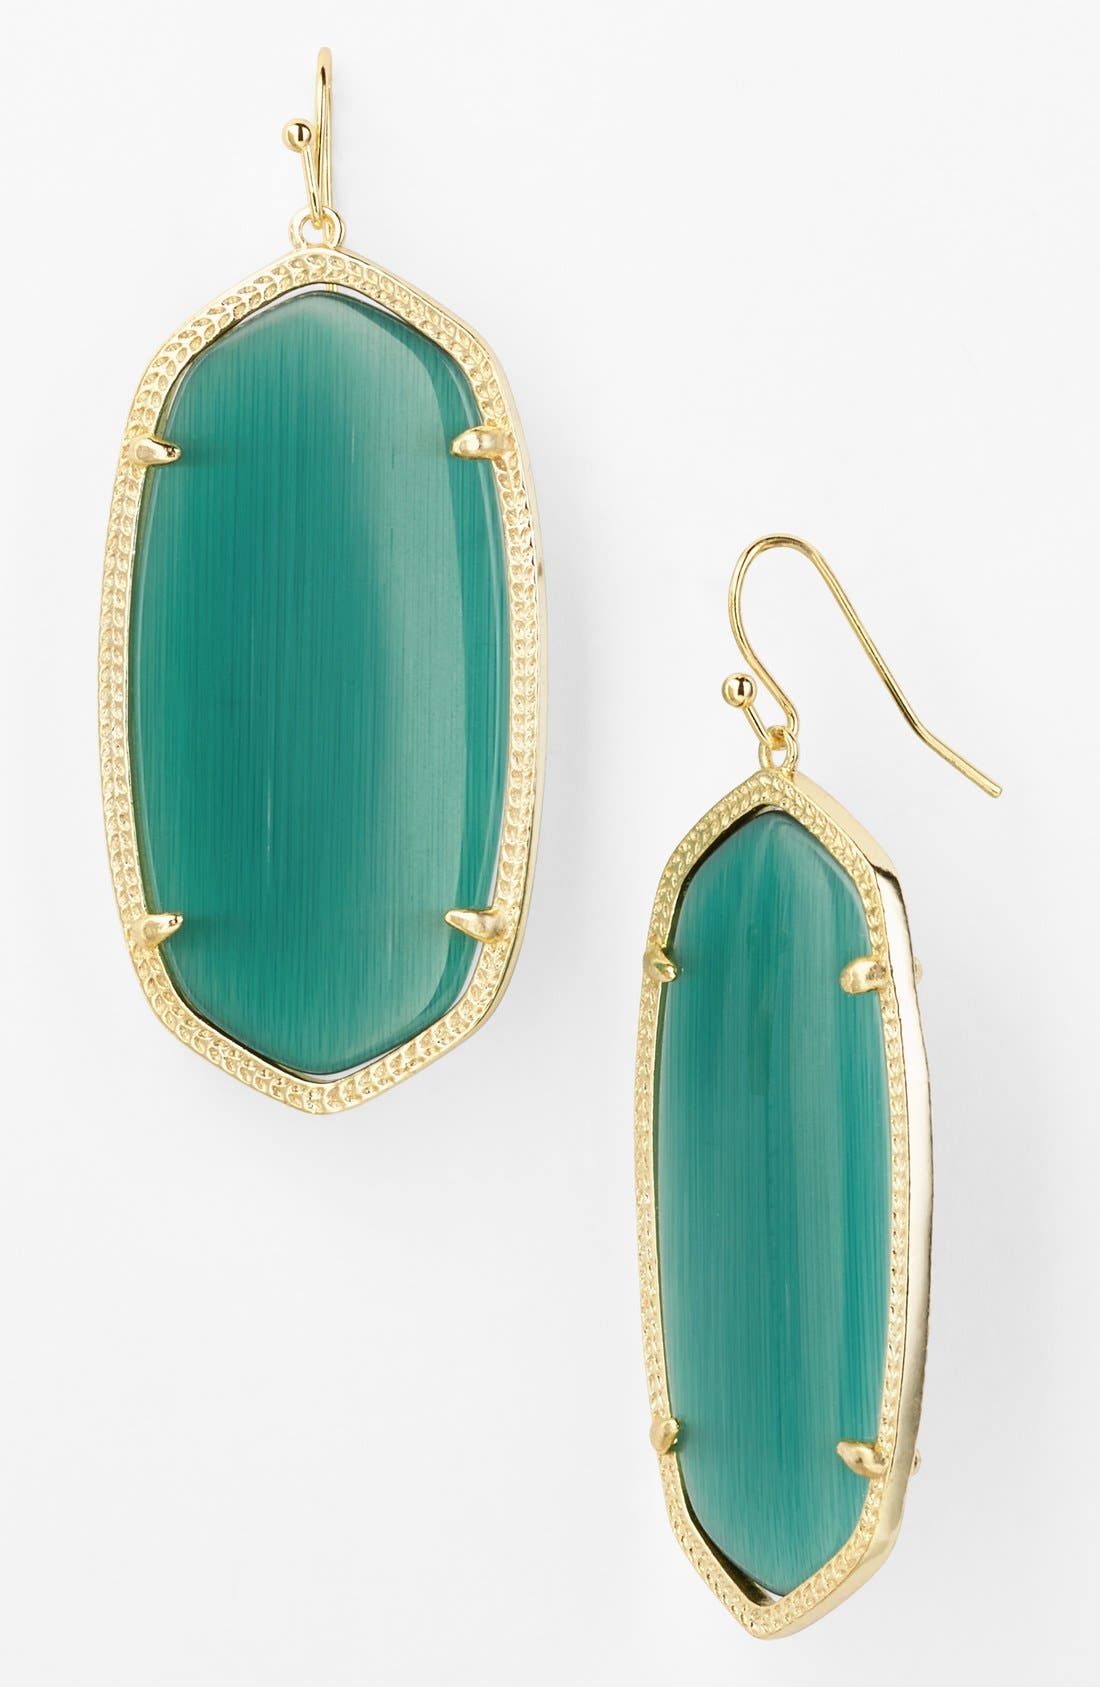 Main Image - Kendra Scott 'Danielle' Oval Statement Earrings